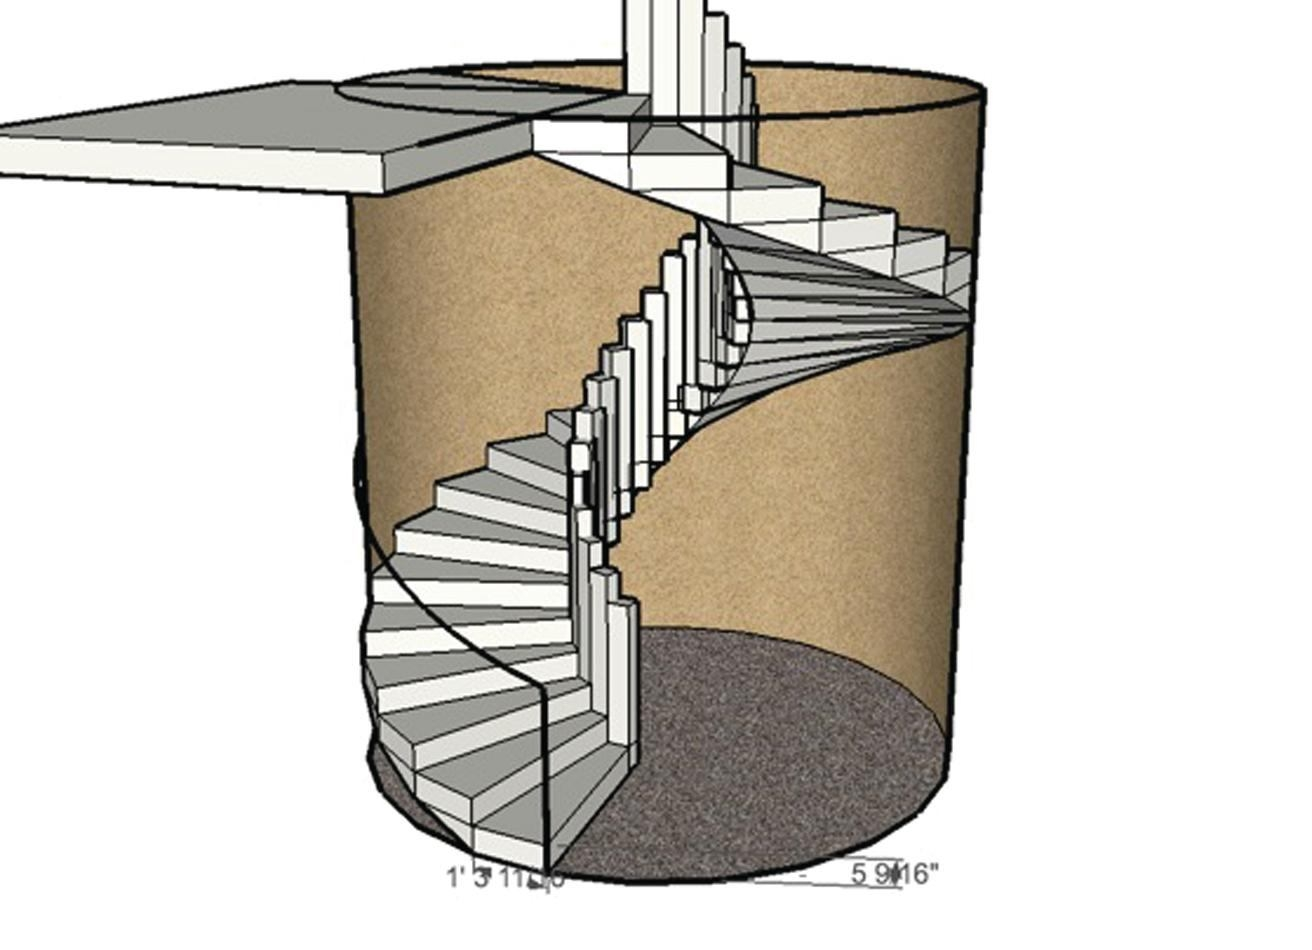 Forming A Circular Concrete Staircase Concrete Construction Magazine   Self Supporting Spiral Staircase   Staircase Design   London Uk   Stair Case   Santa Fe   Risers